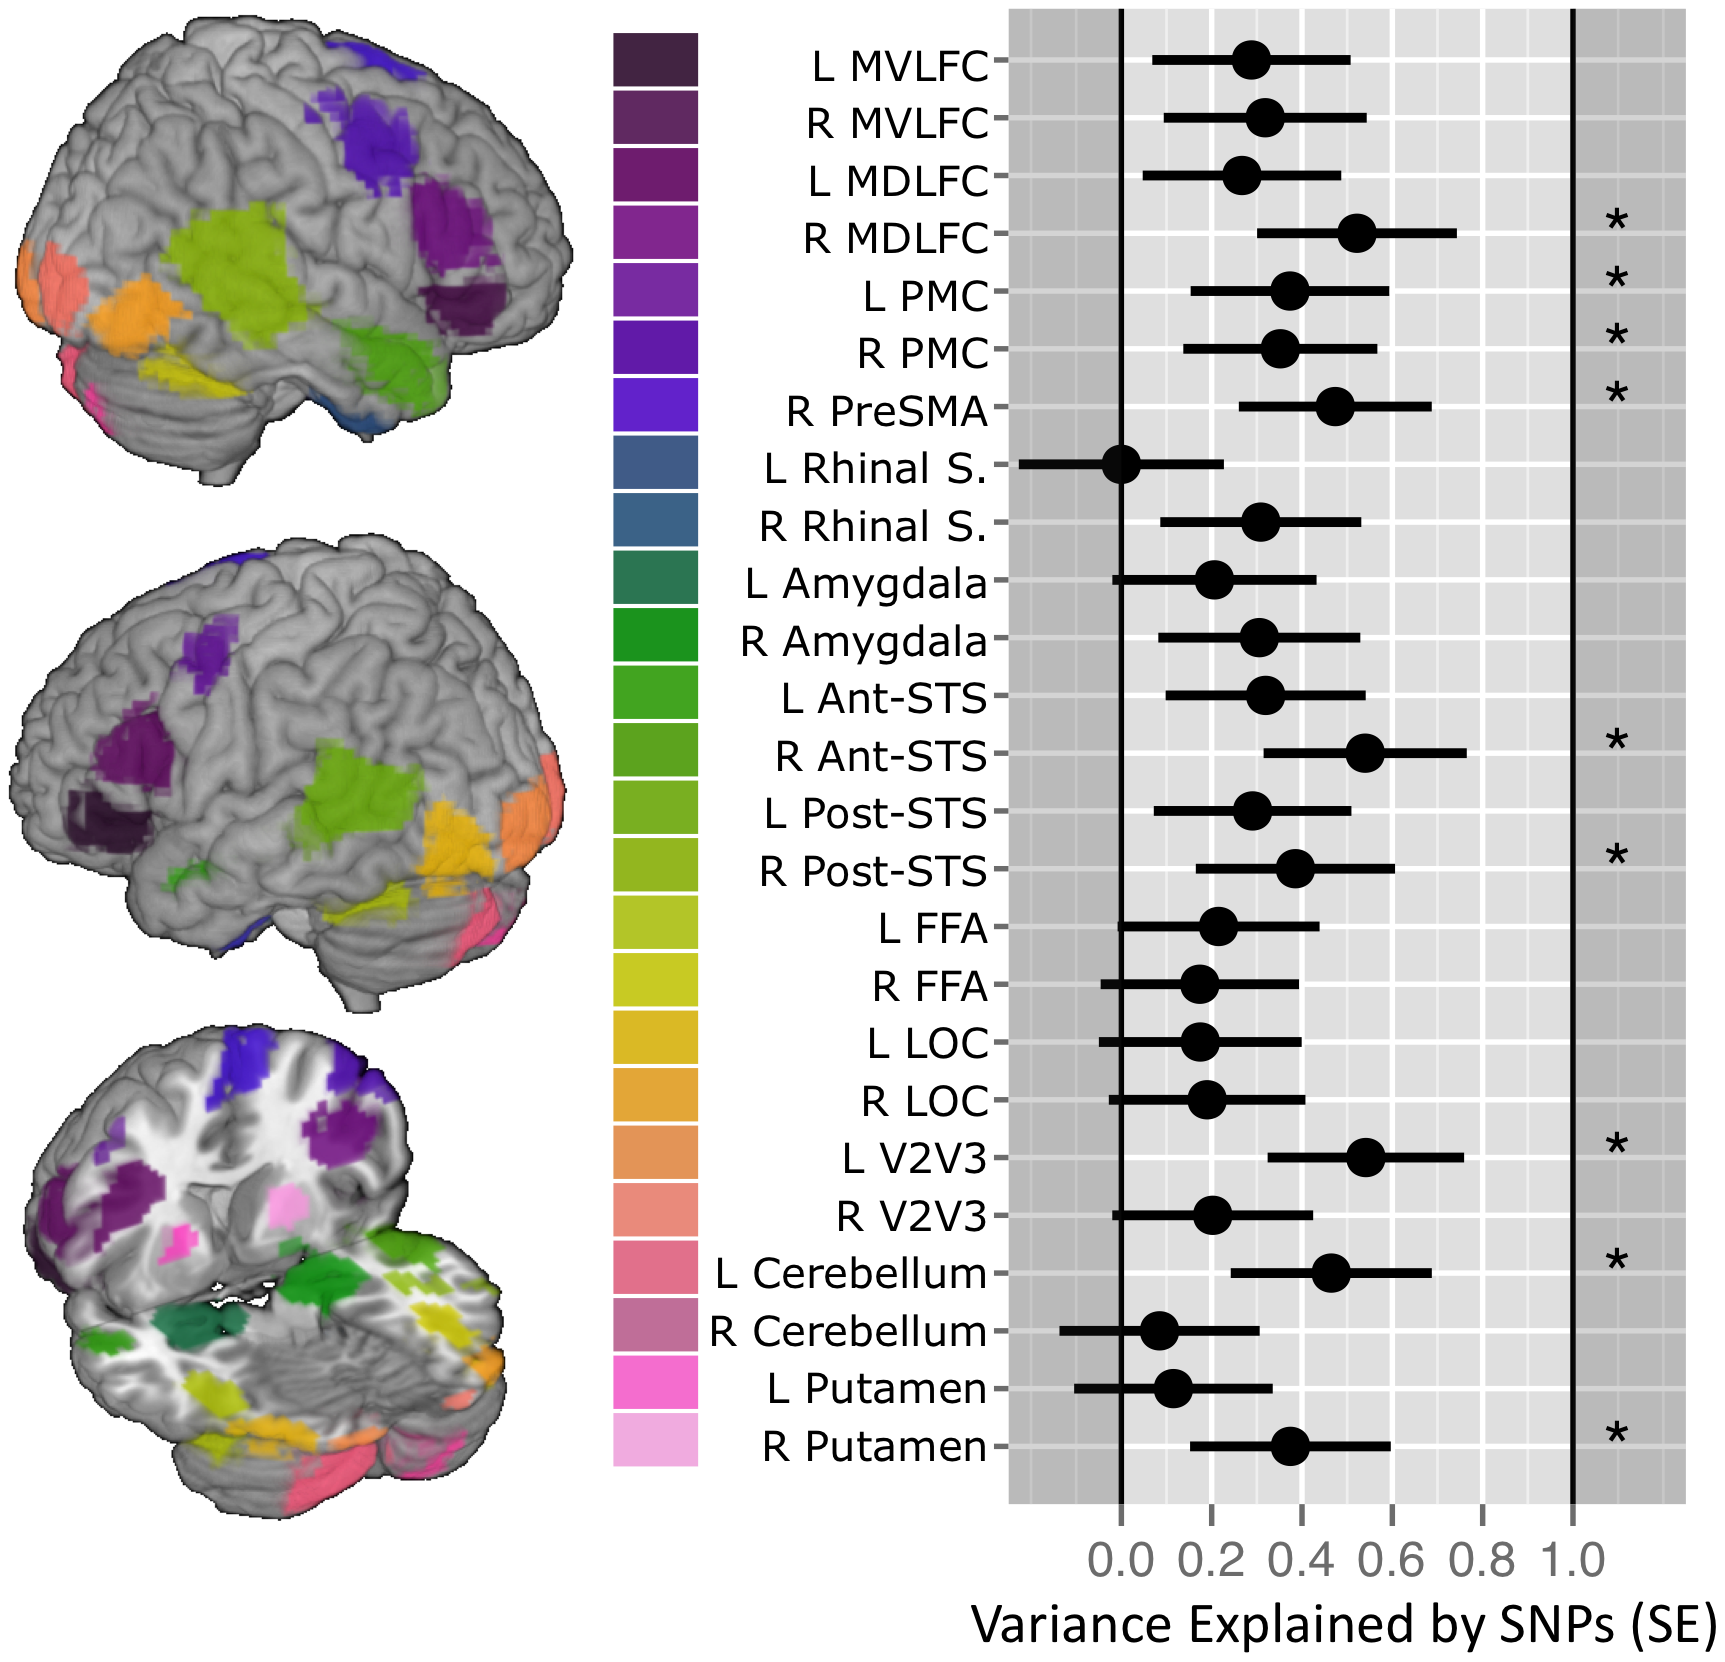 SNP-based estimates of heritability in the brain response to ambiguous faces.